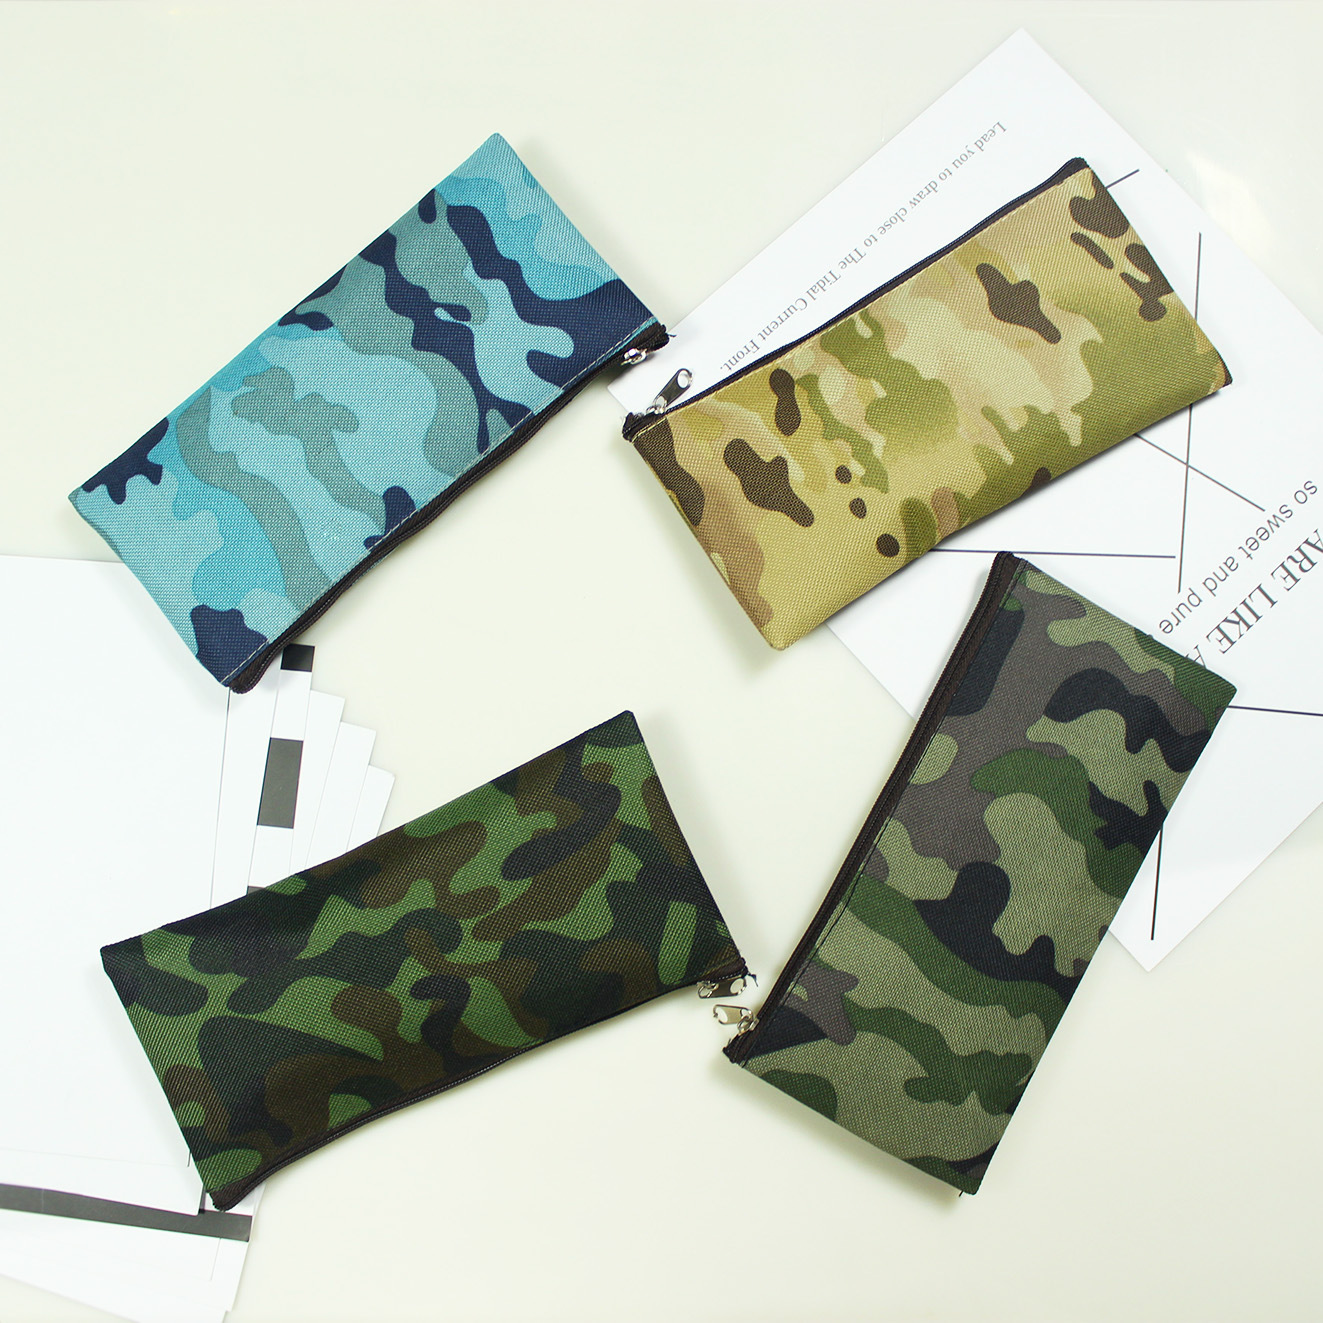 Camouflage Pencil Case Pencil Bag For Boys And Girls School Supplies Cosmetic Makeup Bags Zipper Pouch Purse 4 Colors